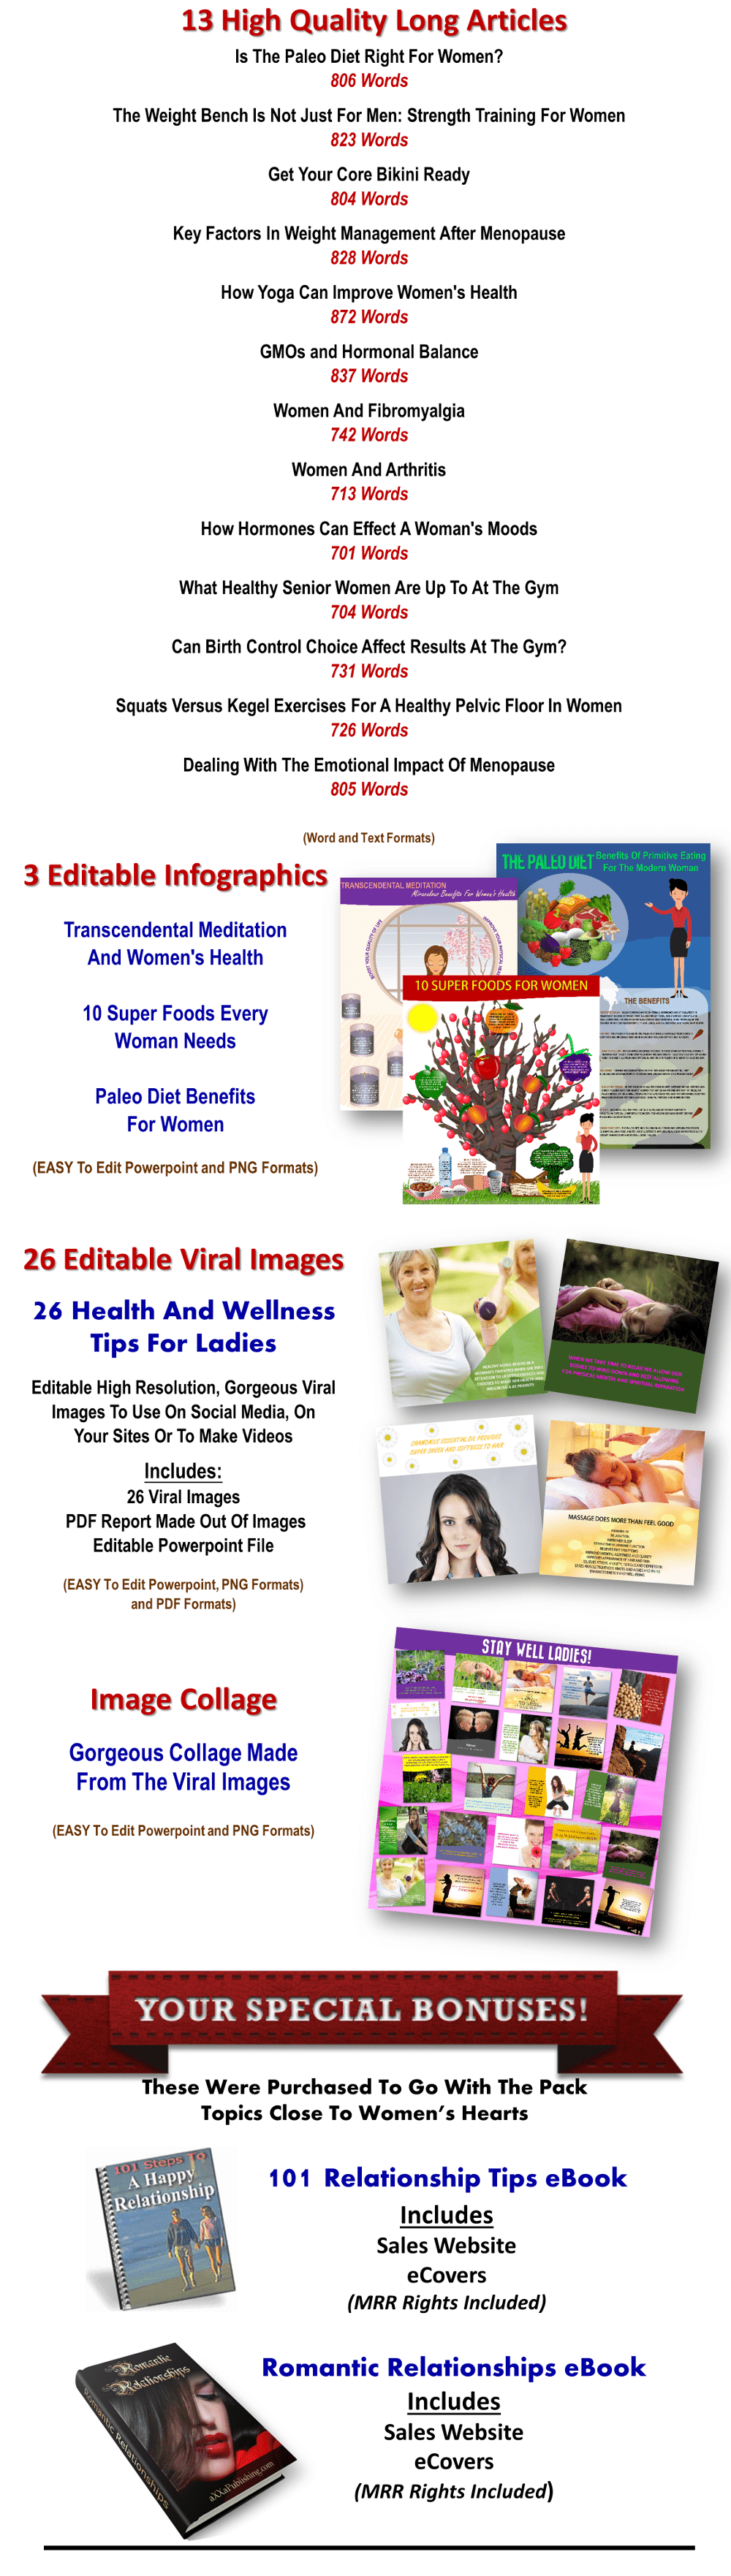 Women's Health/Fitness Giant PLR